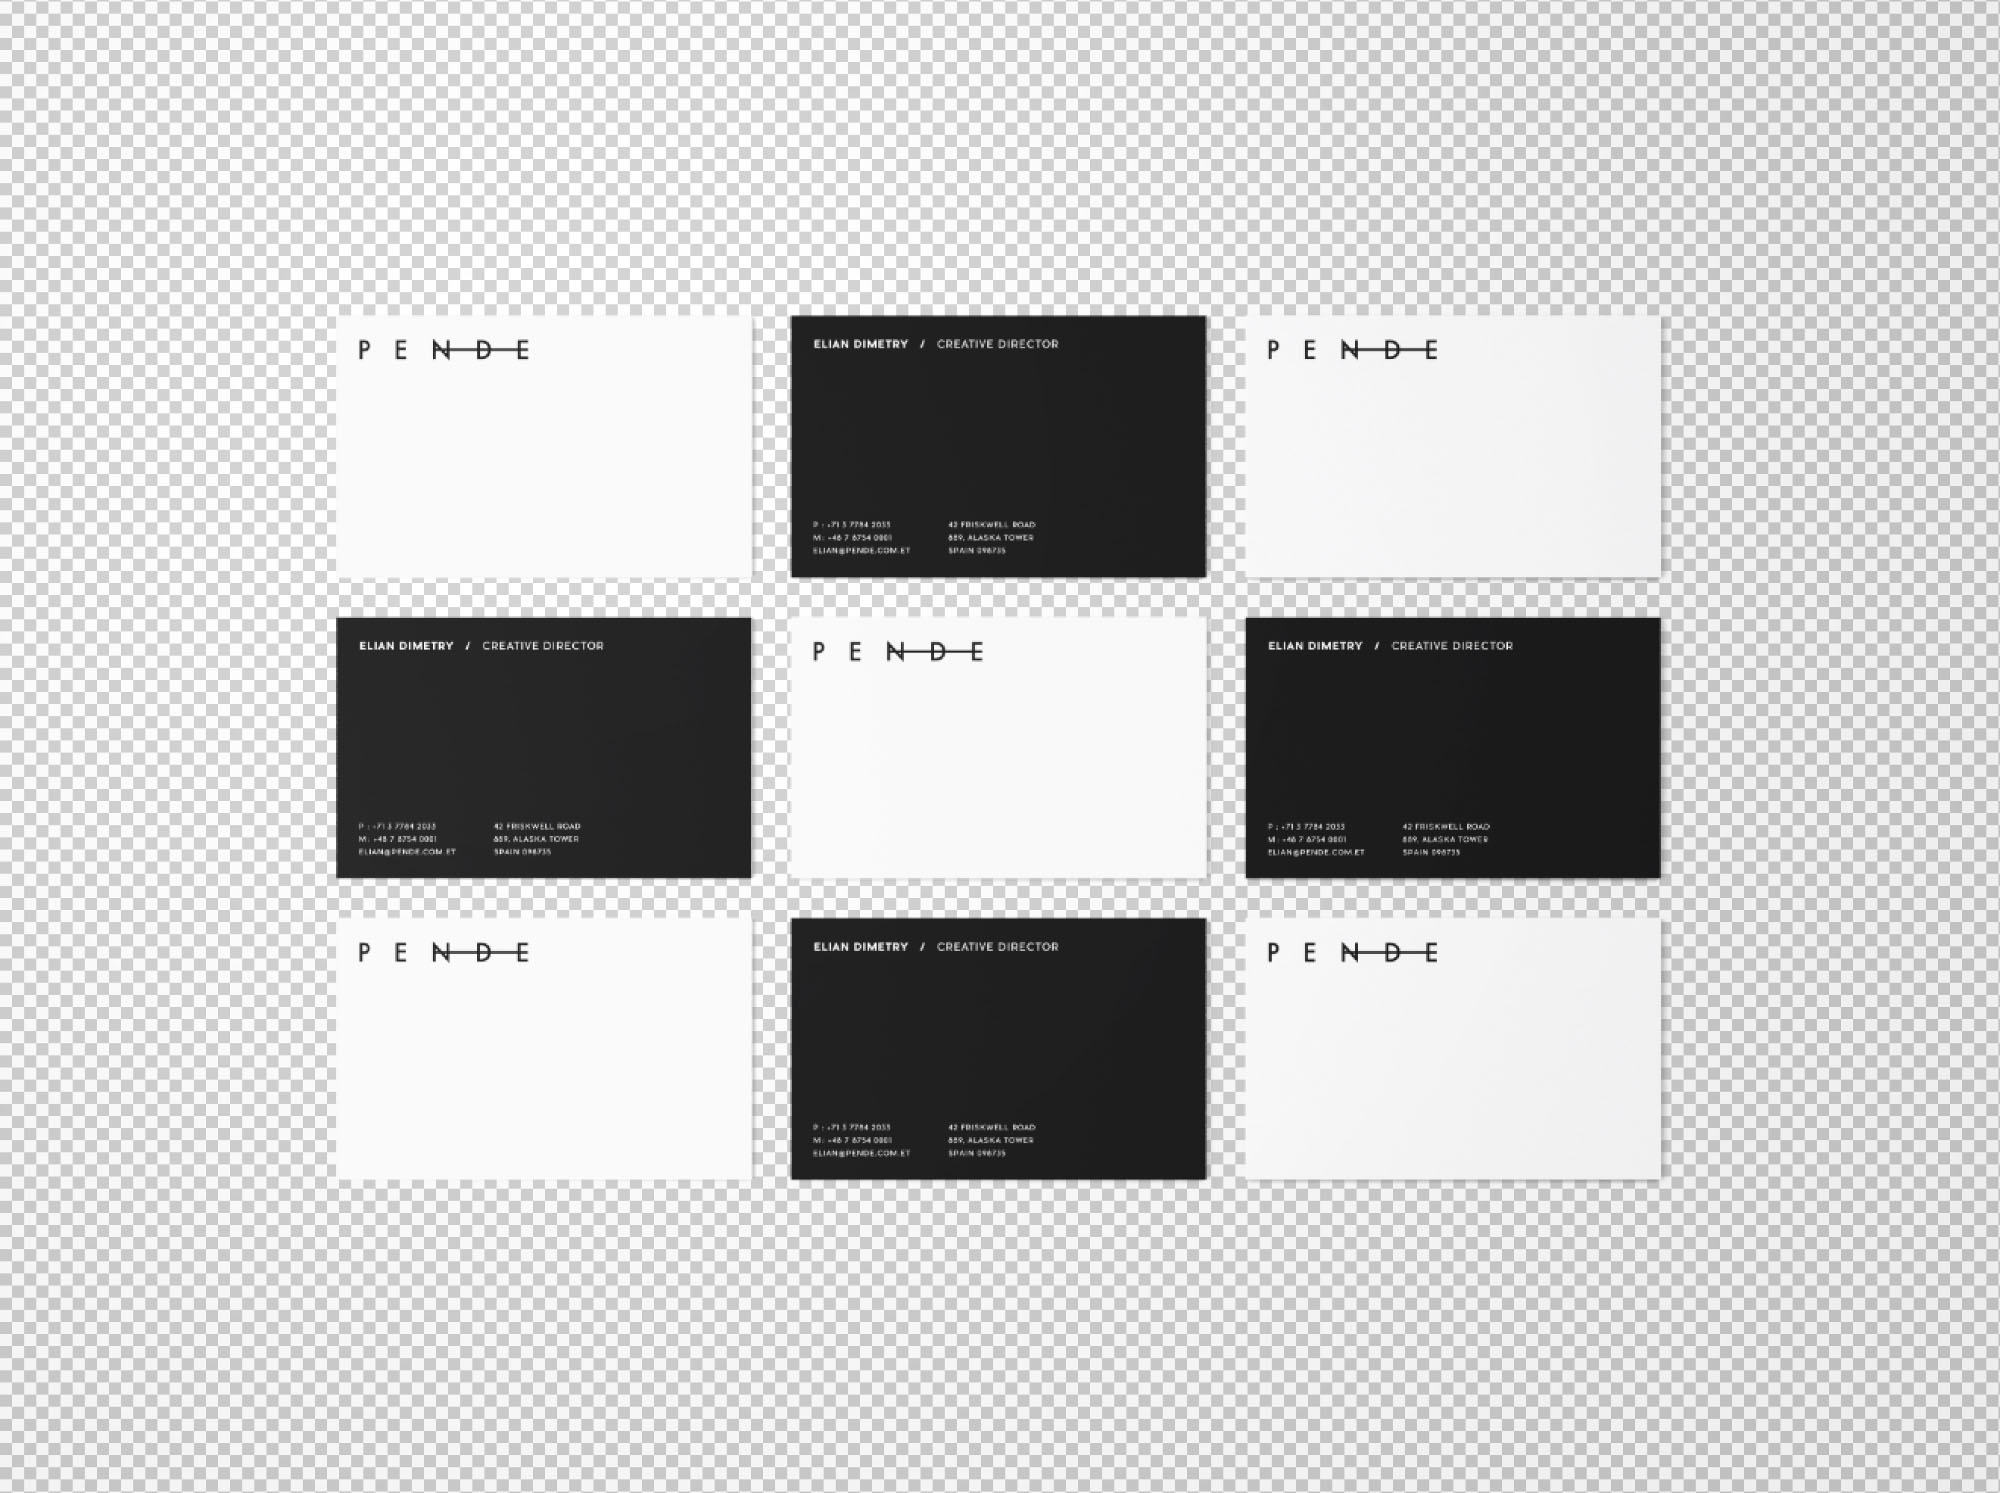 Uniform Business Cards Mockup - Transparent